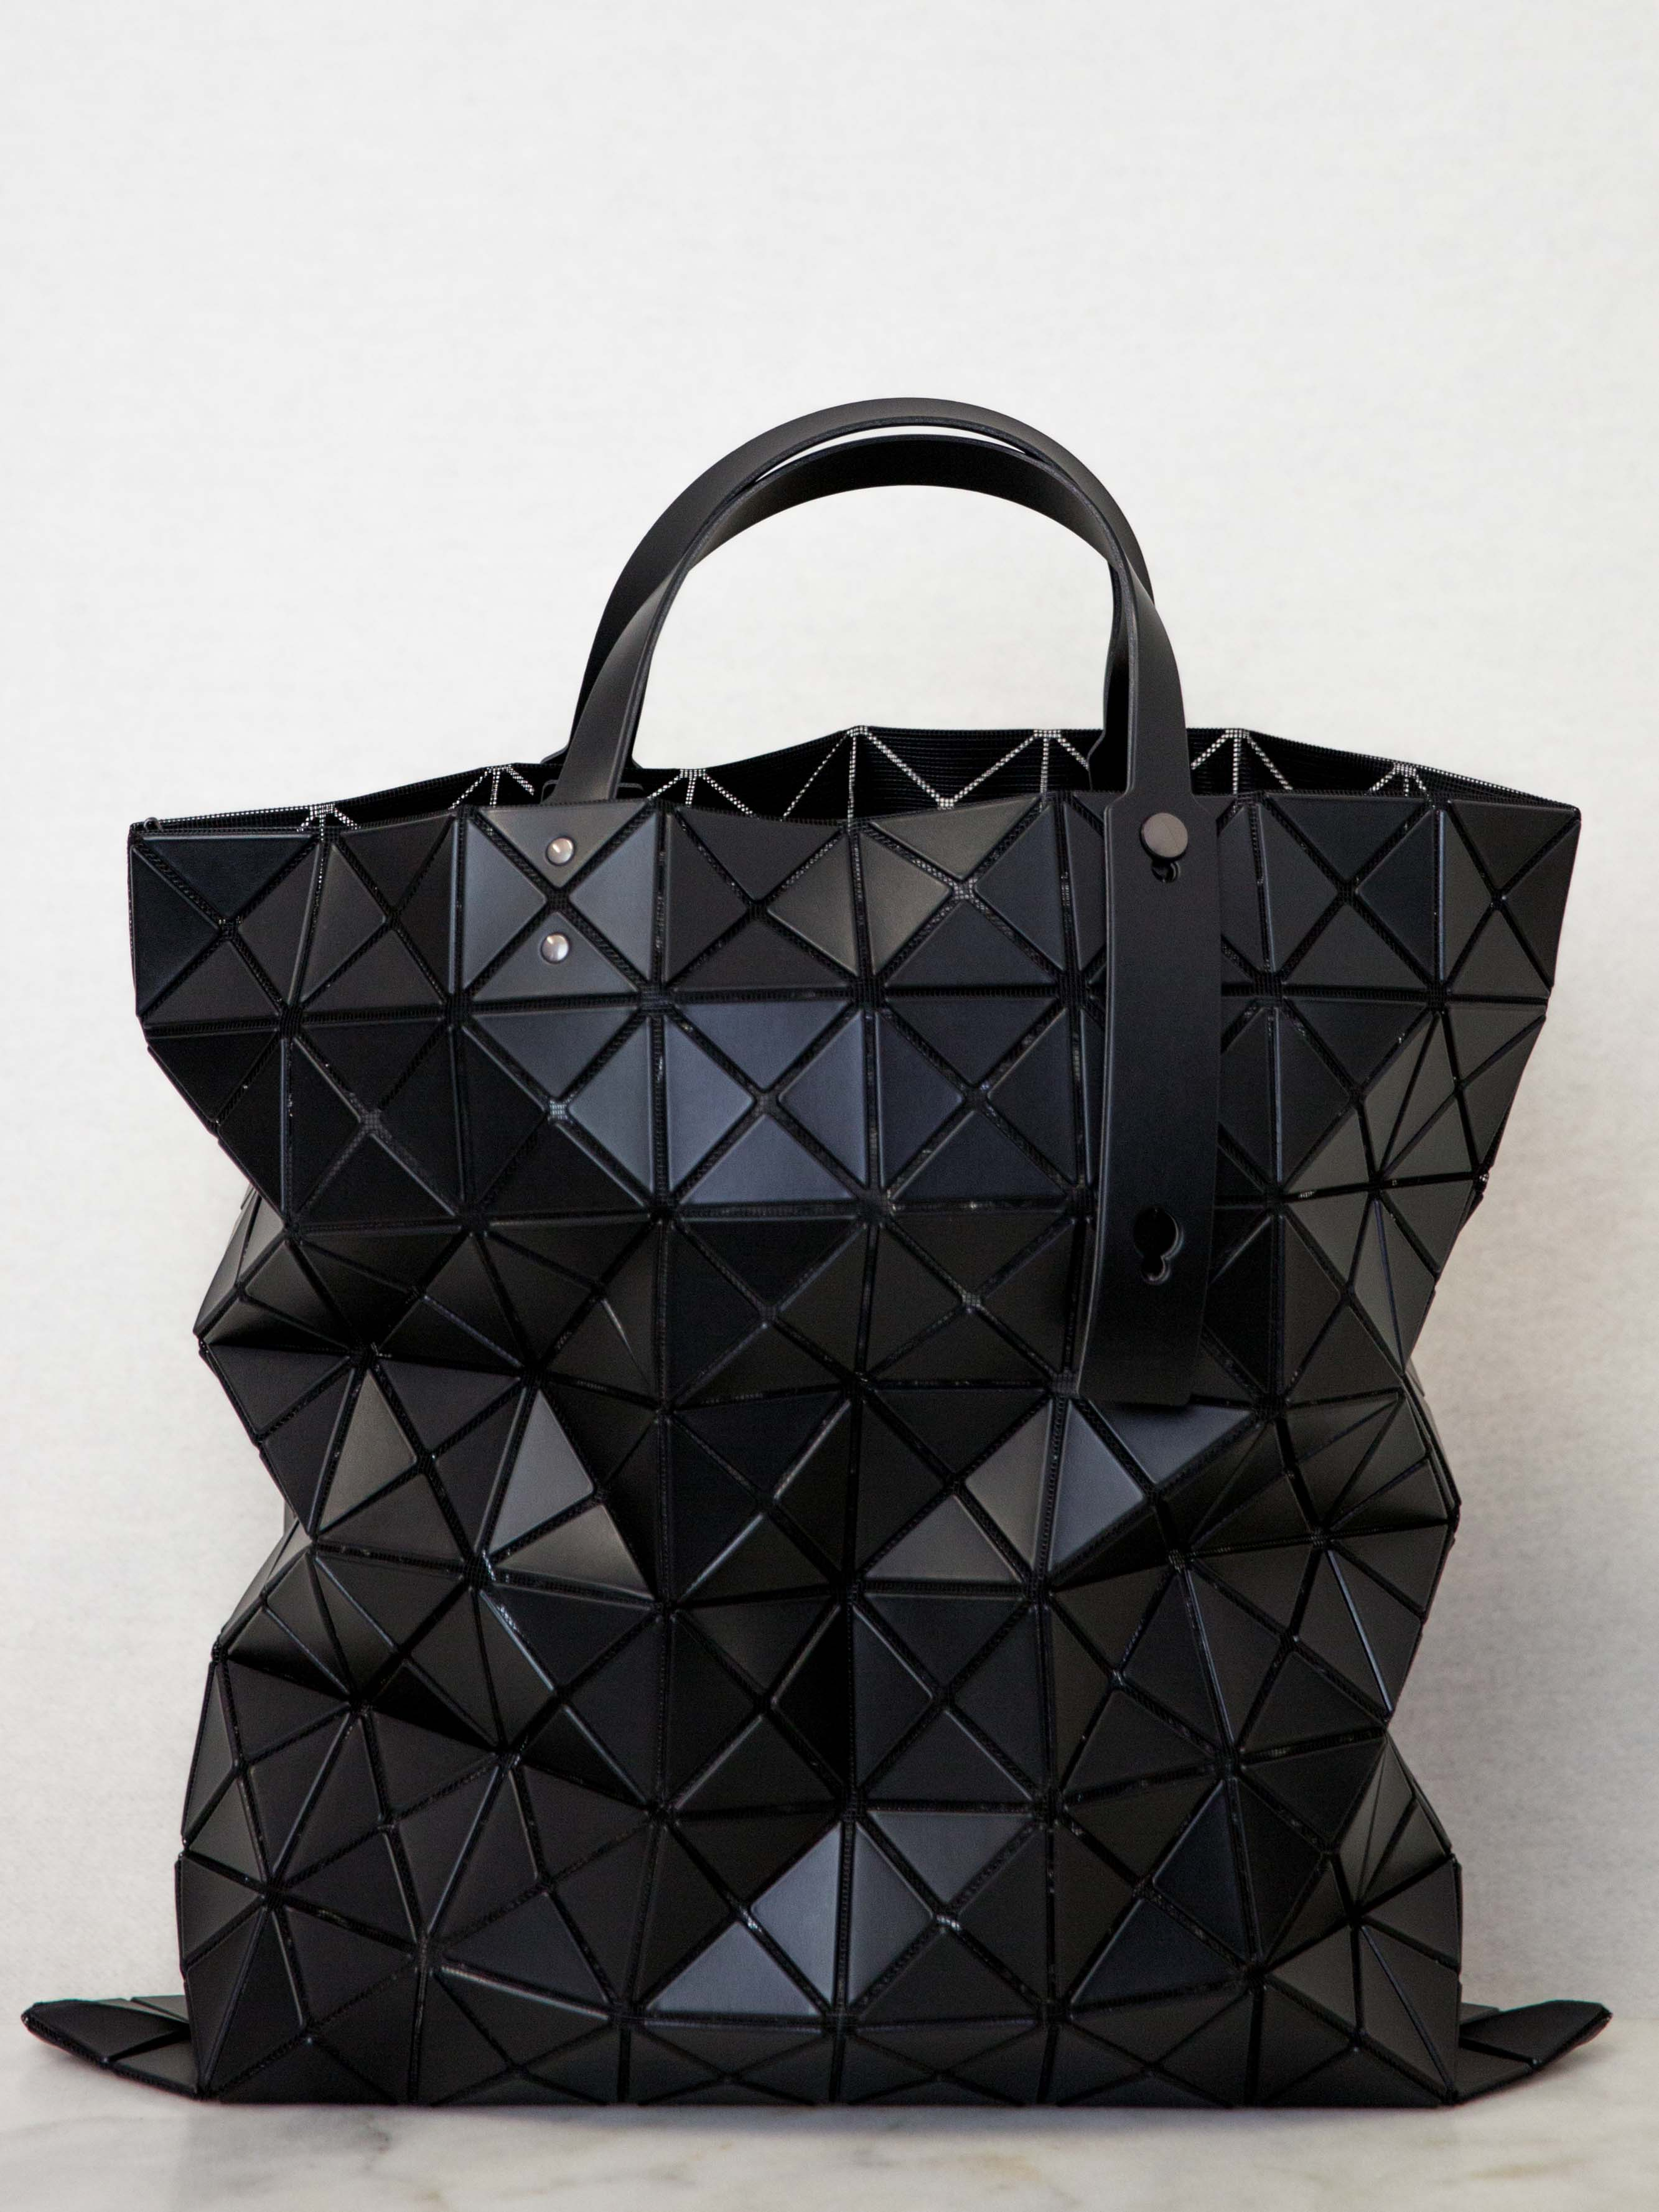 4e5e6c31a7 BAO BAO ISSEY MIYAKE Lucent Matte Oversized Tote Bag - Black – Shifting  Worlds